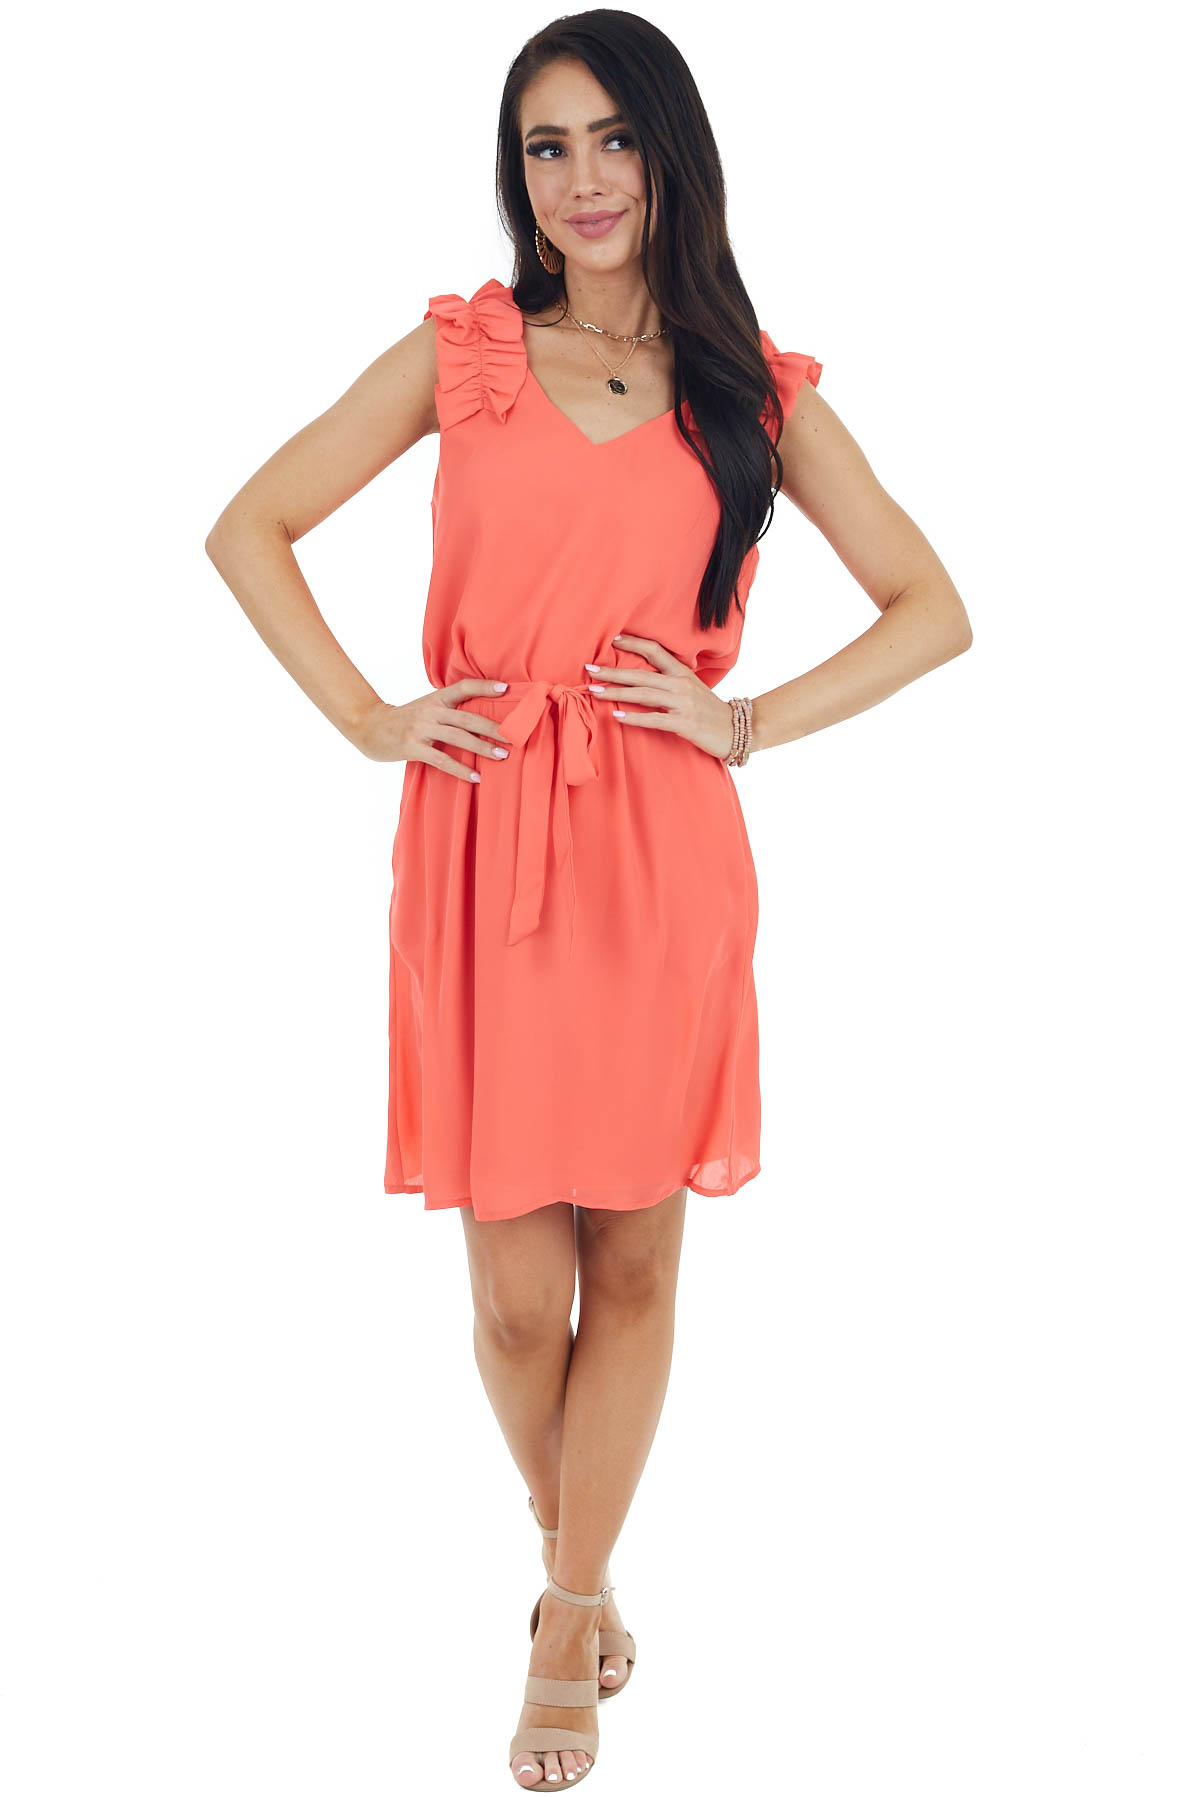 Neon Coral Woven Short Dress with Ruffle Straps and Tie